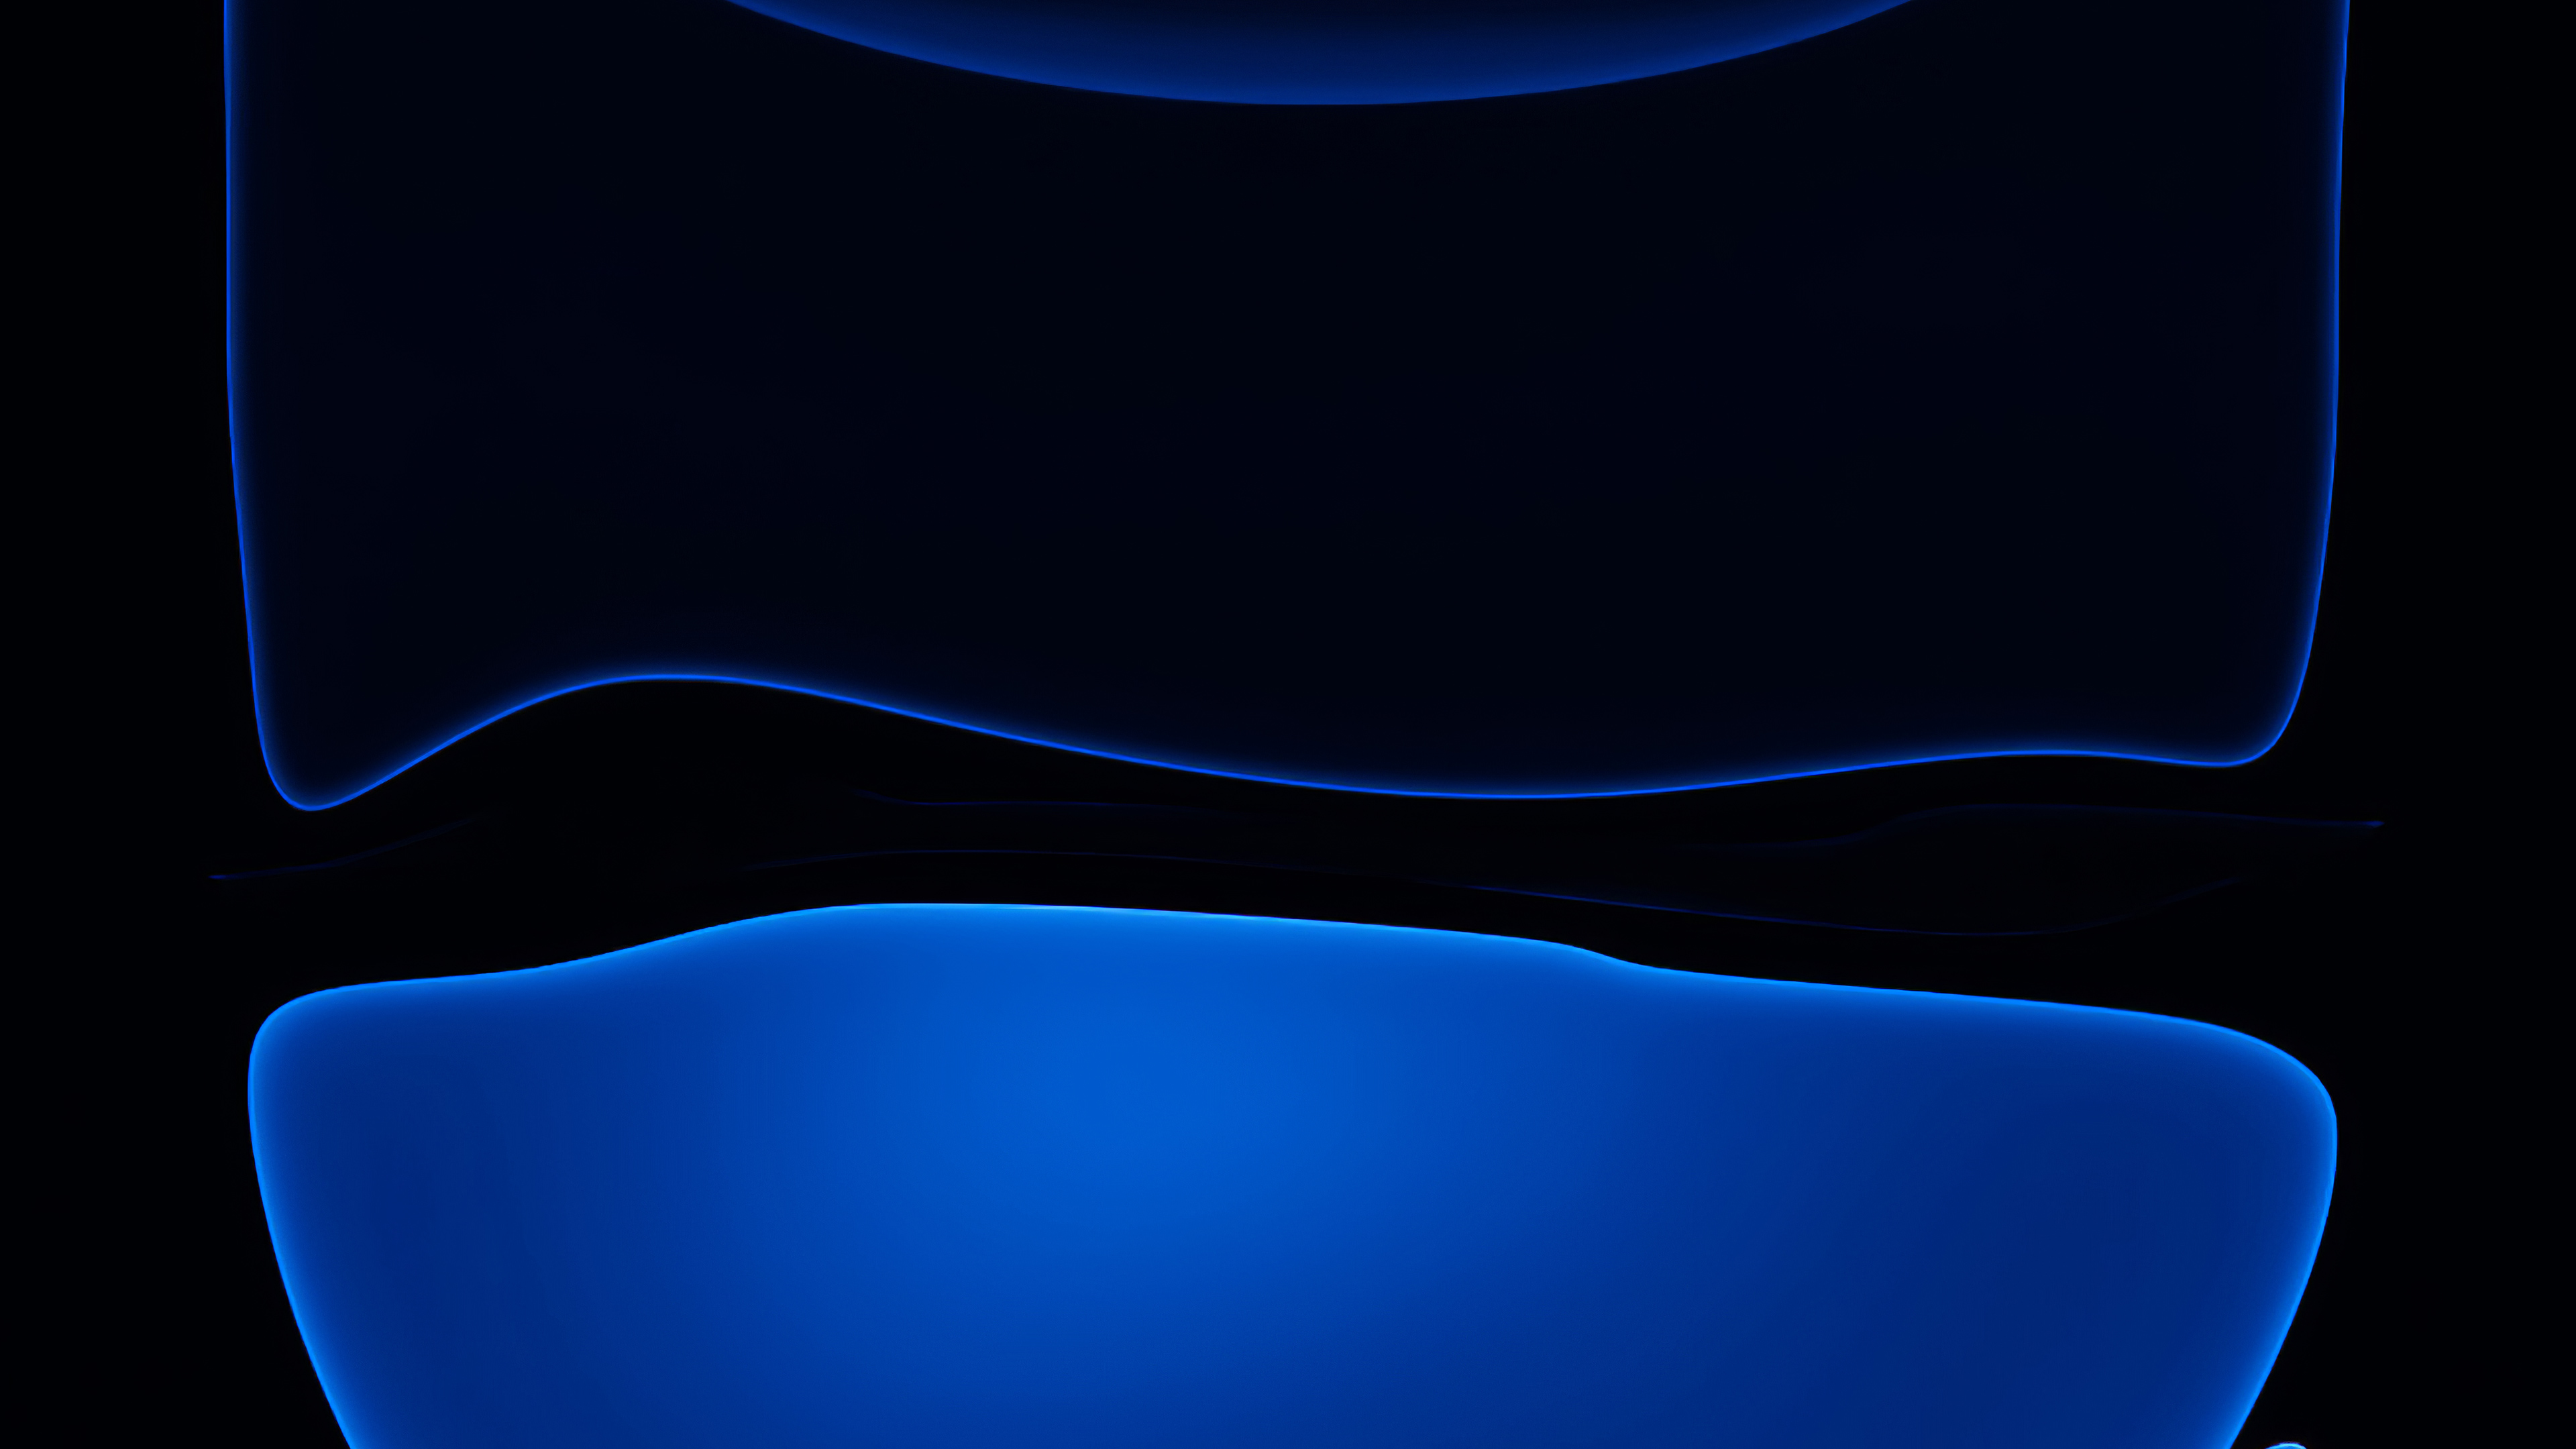 1920x1080 Ios 13 Dark Blue Laptop Full Hd 1080p Hd 4k Wallpapers Images Backgrounds Photos And Pictures